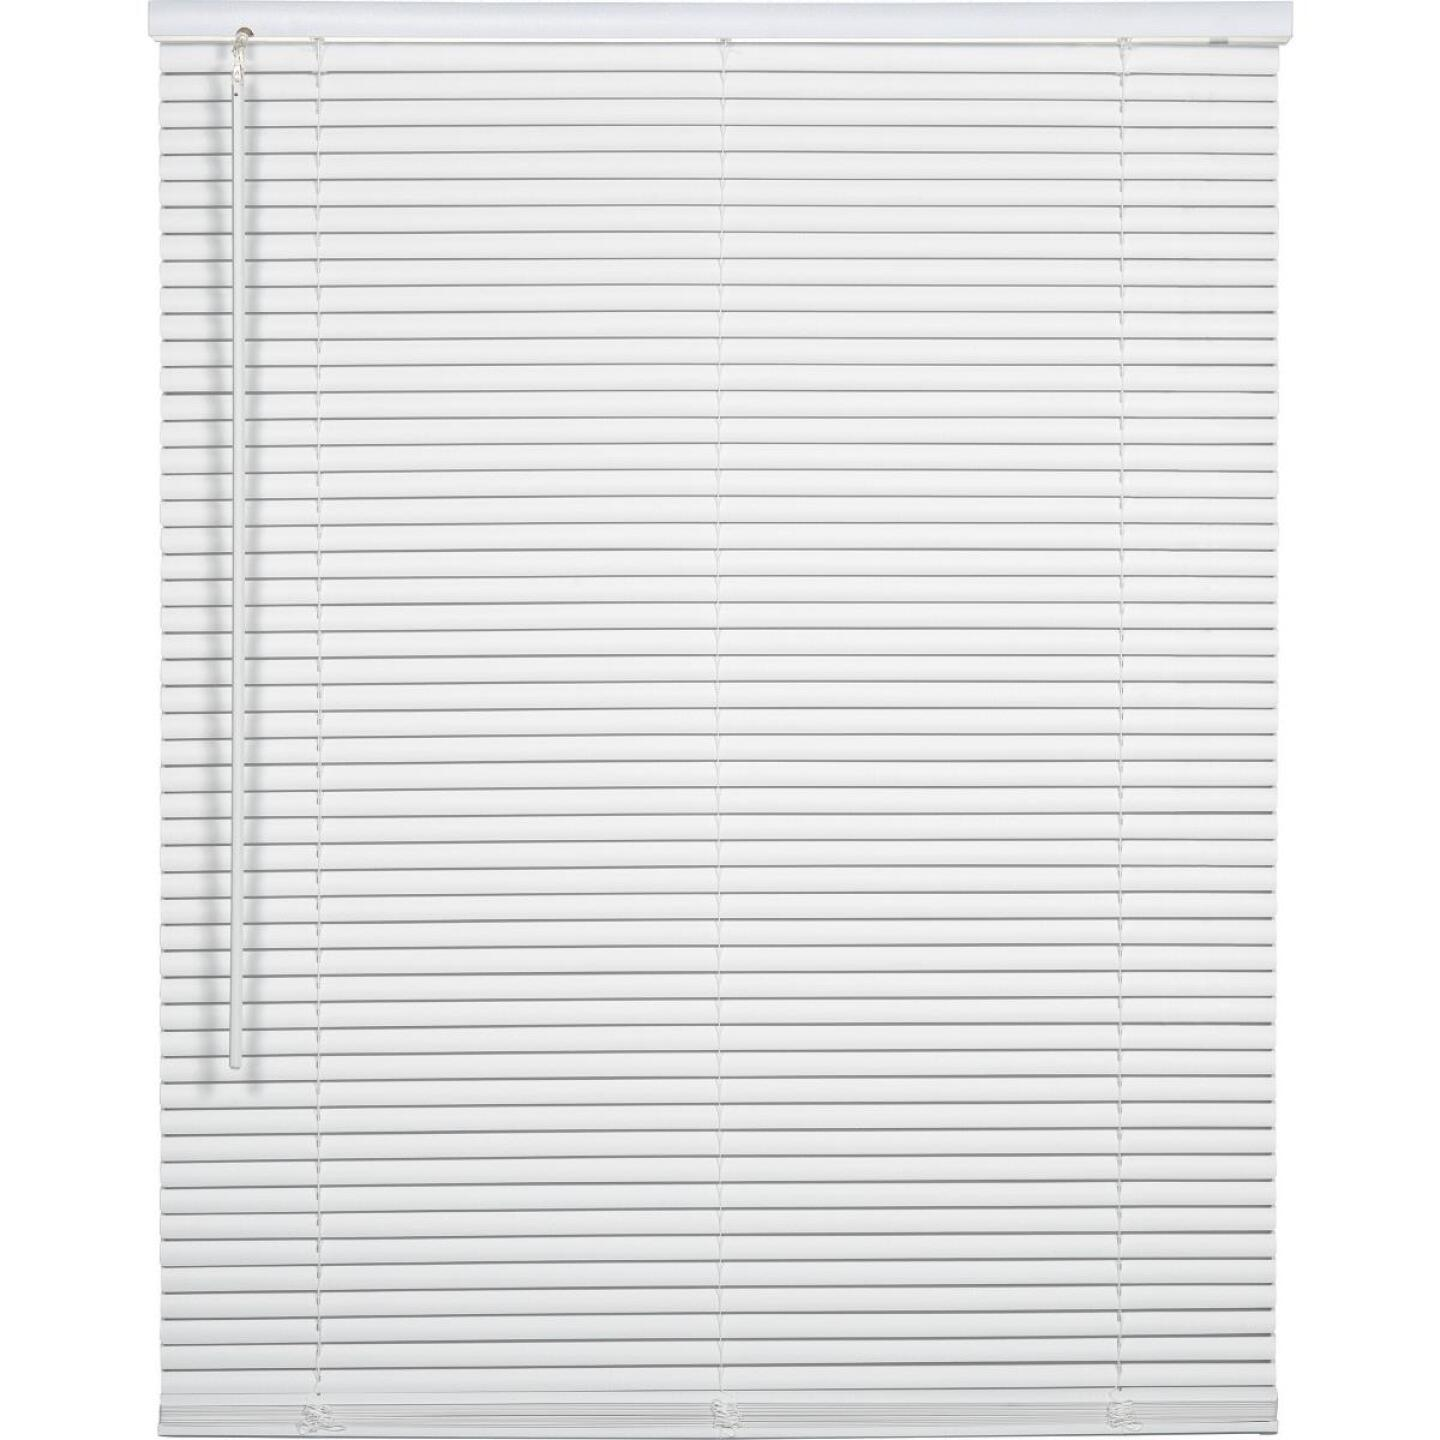 Home Impressions 28 In. x 72 In. x 1 In. White Vinyl Light Filtering Cordless Mini Blind Image 1